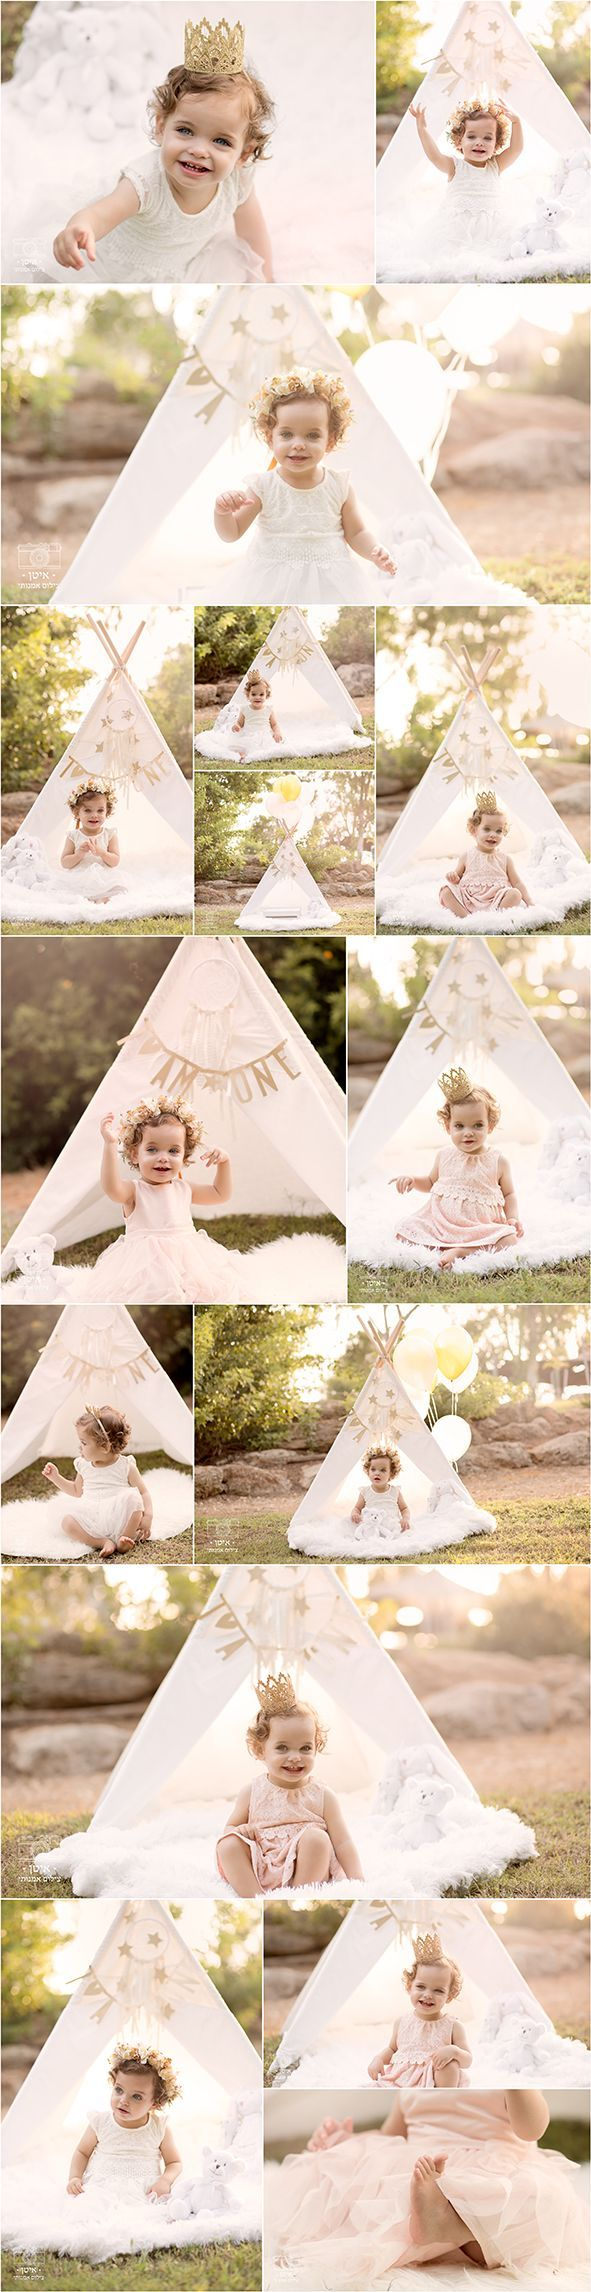 outdoor kids session, first birthday session, teepee tent, flower crown, itan fine art photography